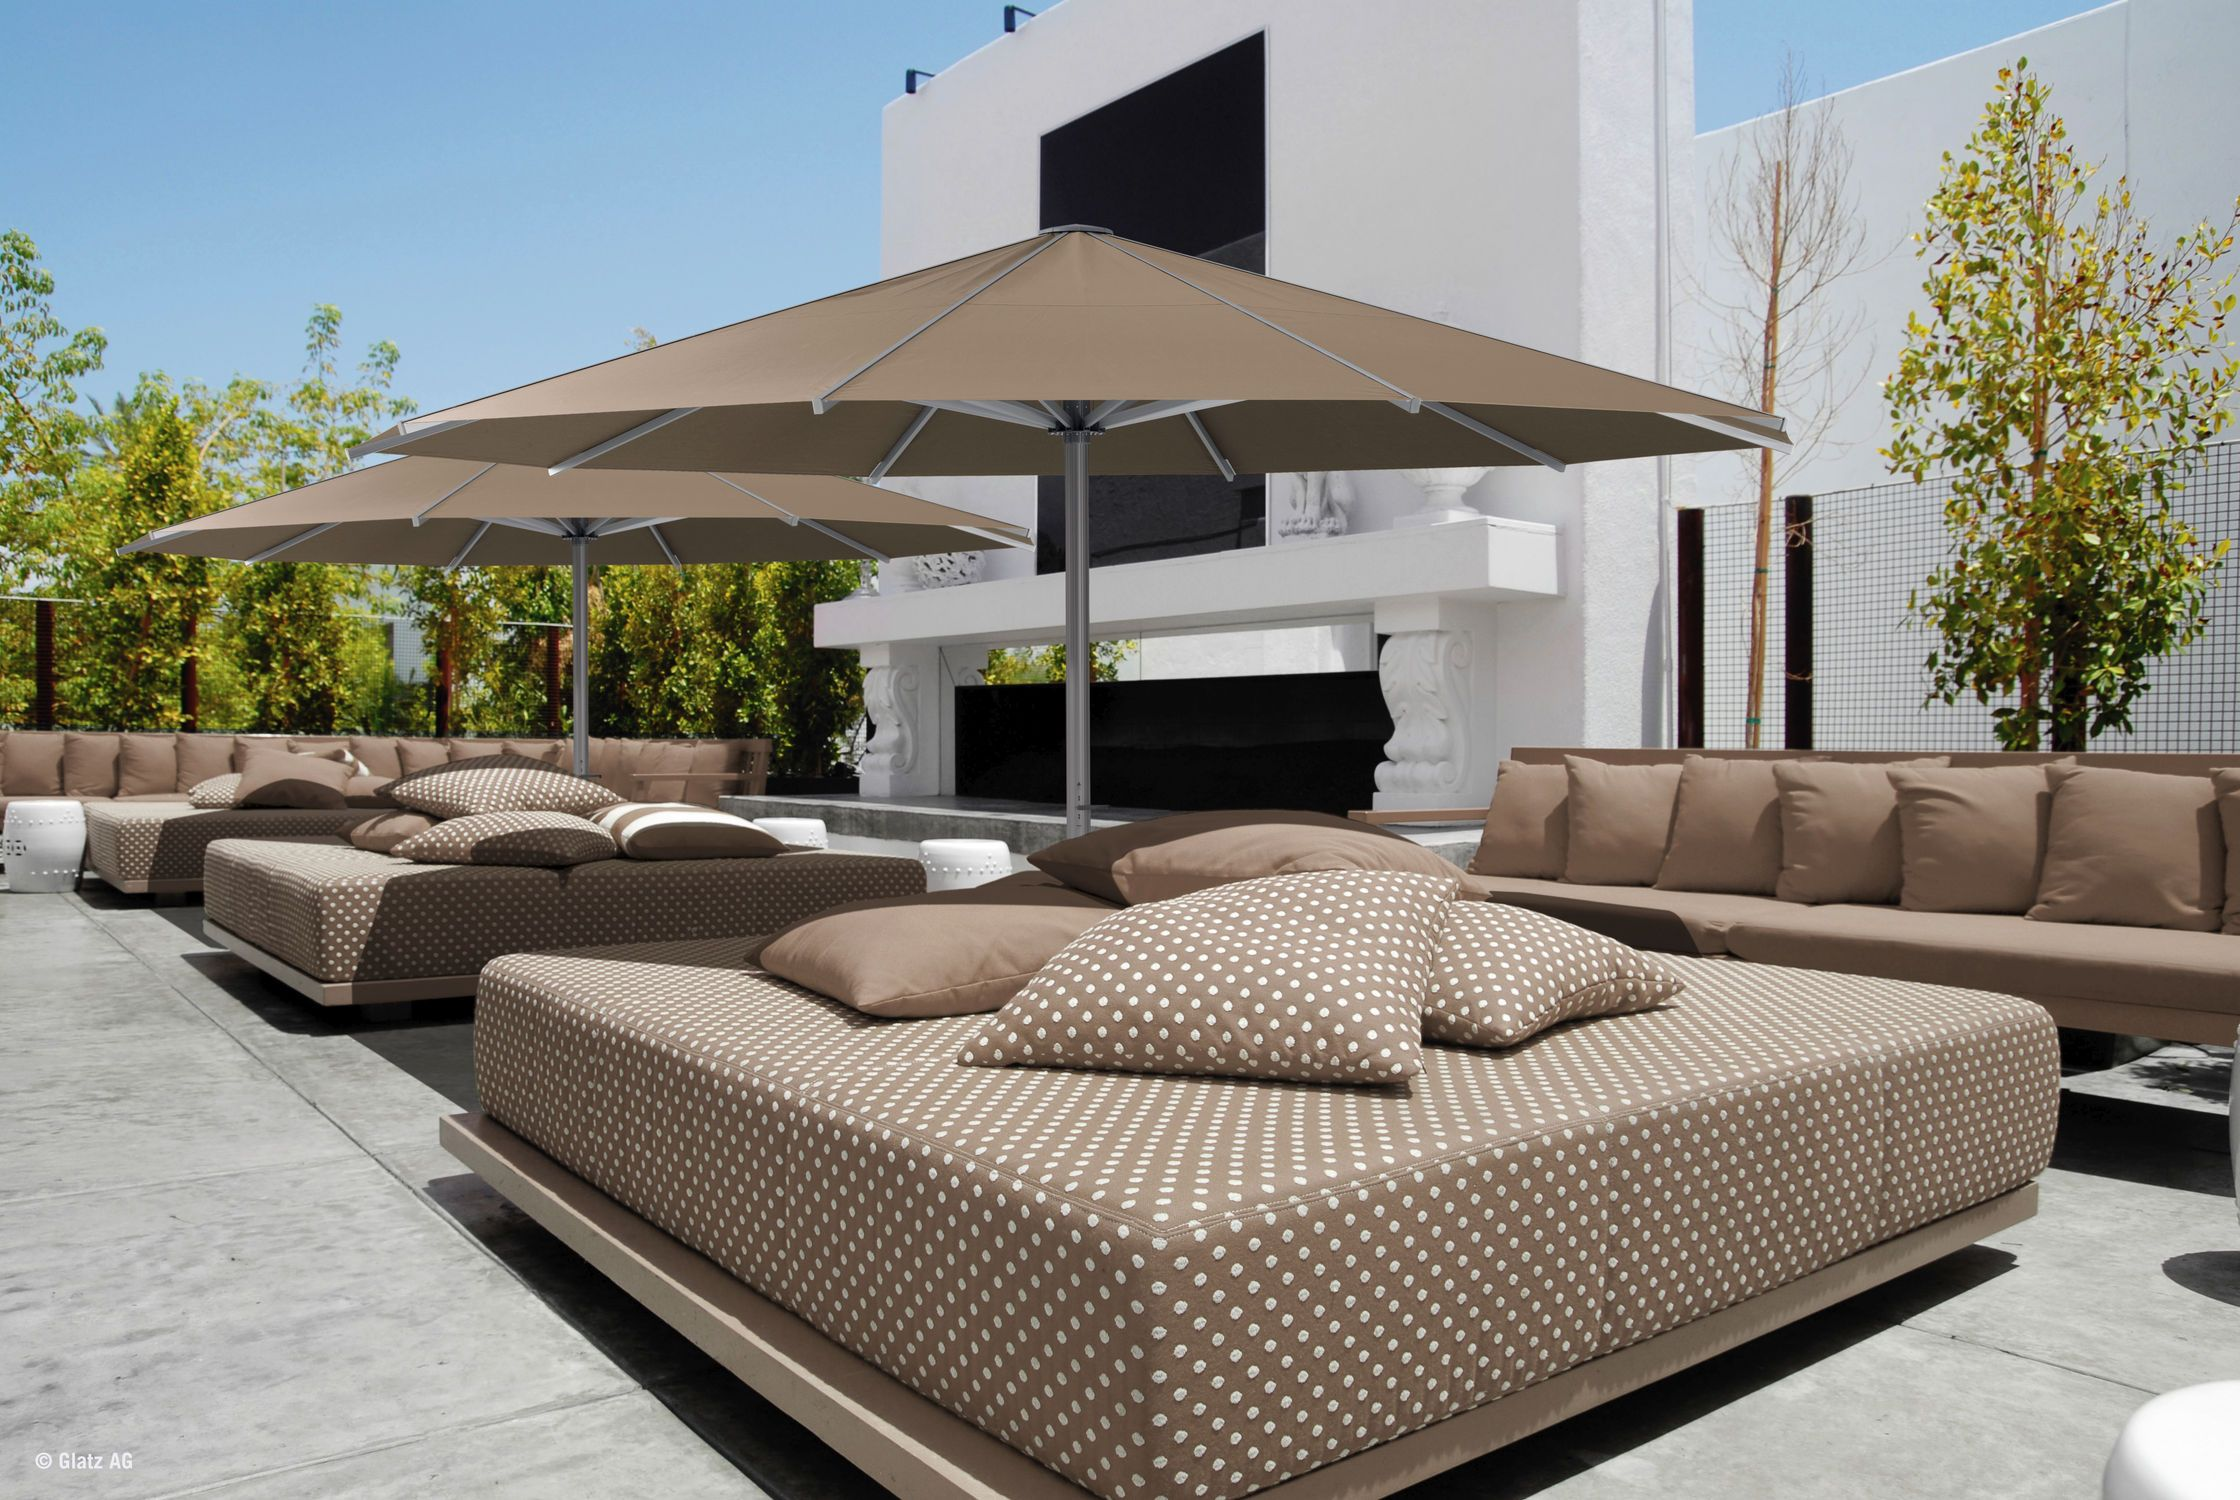 Furniture Decoration Comfortable Brown Sofa Bed With Pillows  · Patio  Umbrella ...